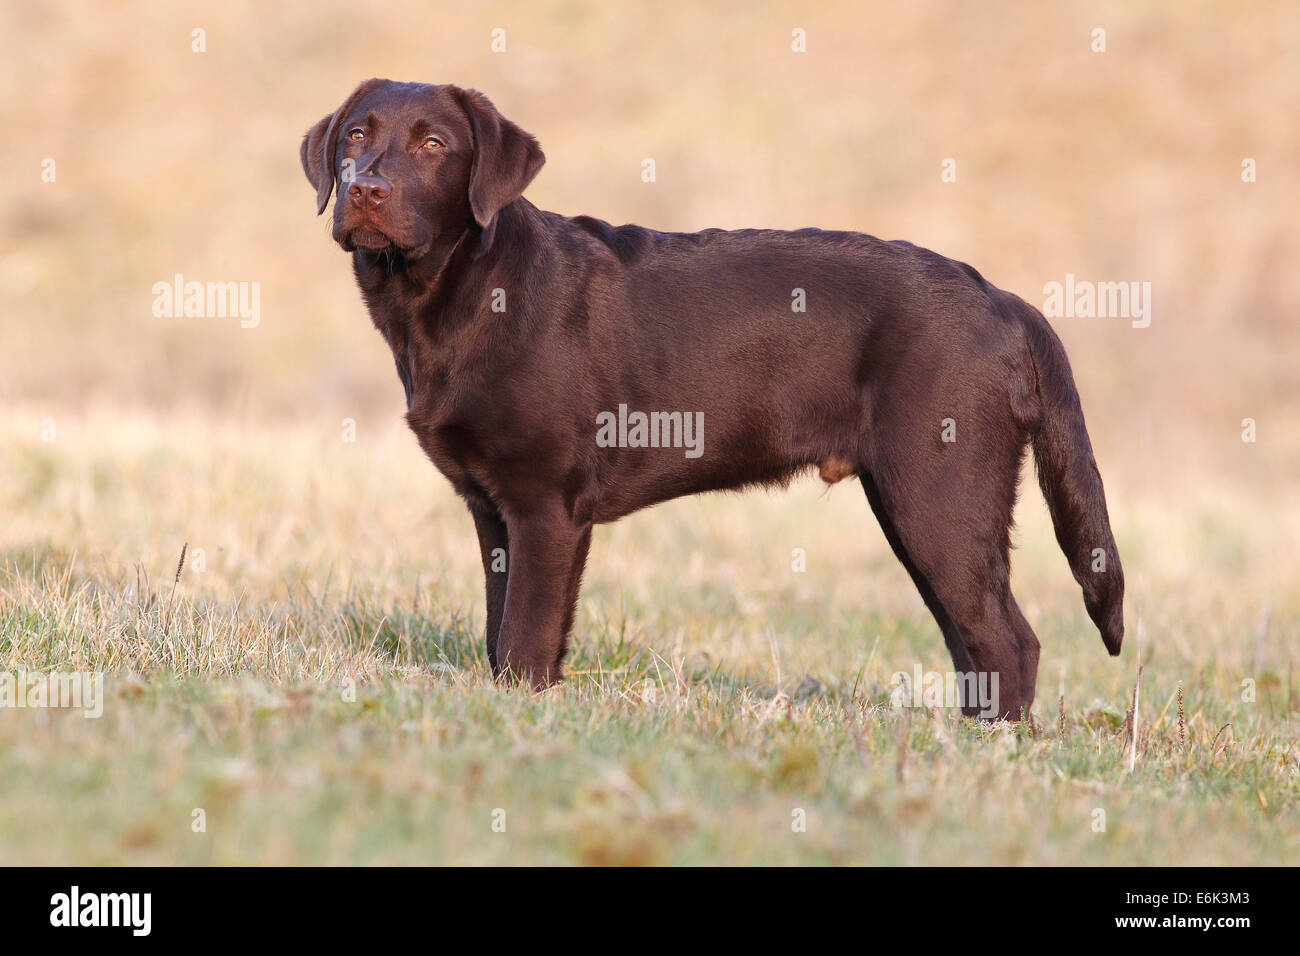 Chocolate Labrador Retriever, male dog standing in the grass, Germany - Stock Image